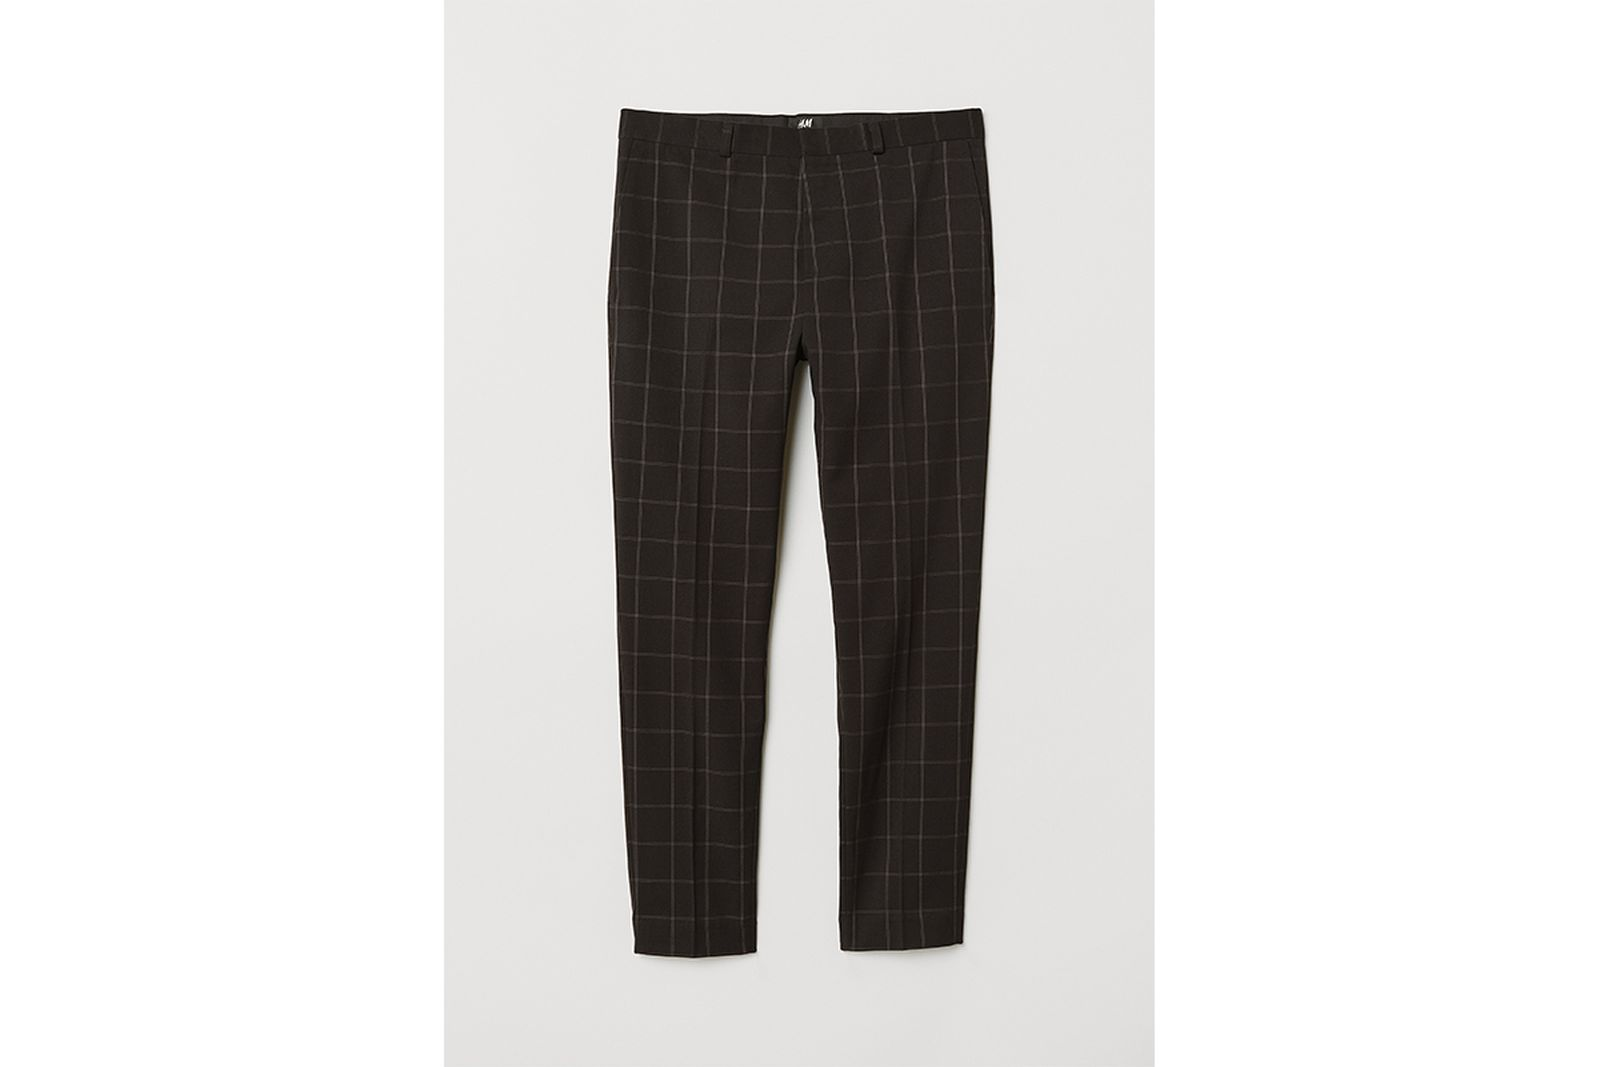 HM Skinny Fit Suit Pants Gift Guide h&m holiday